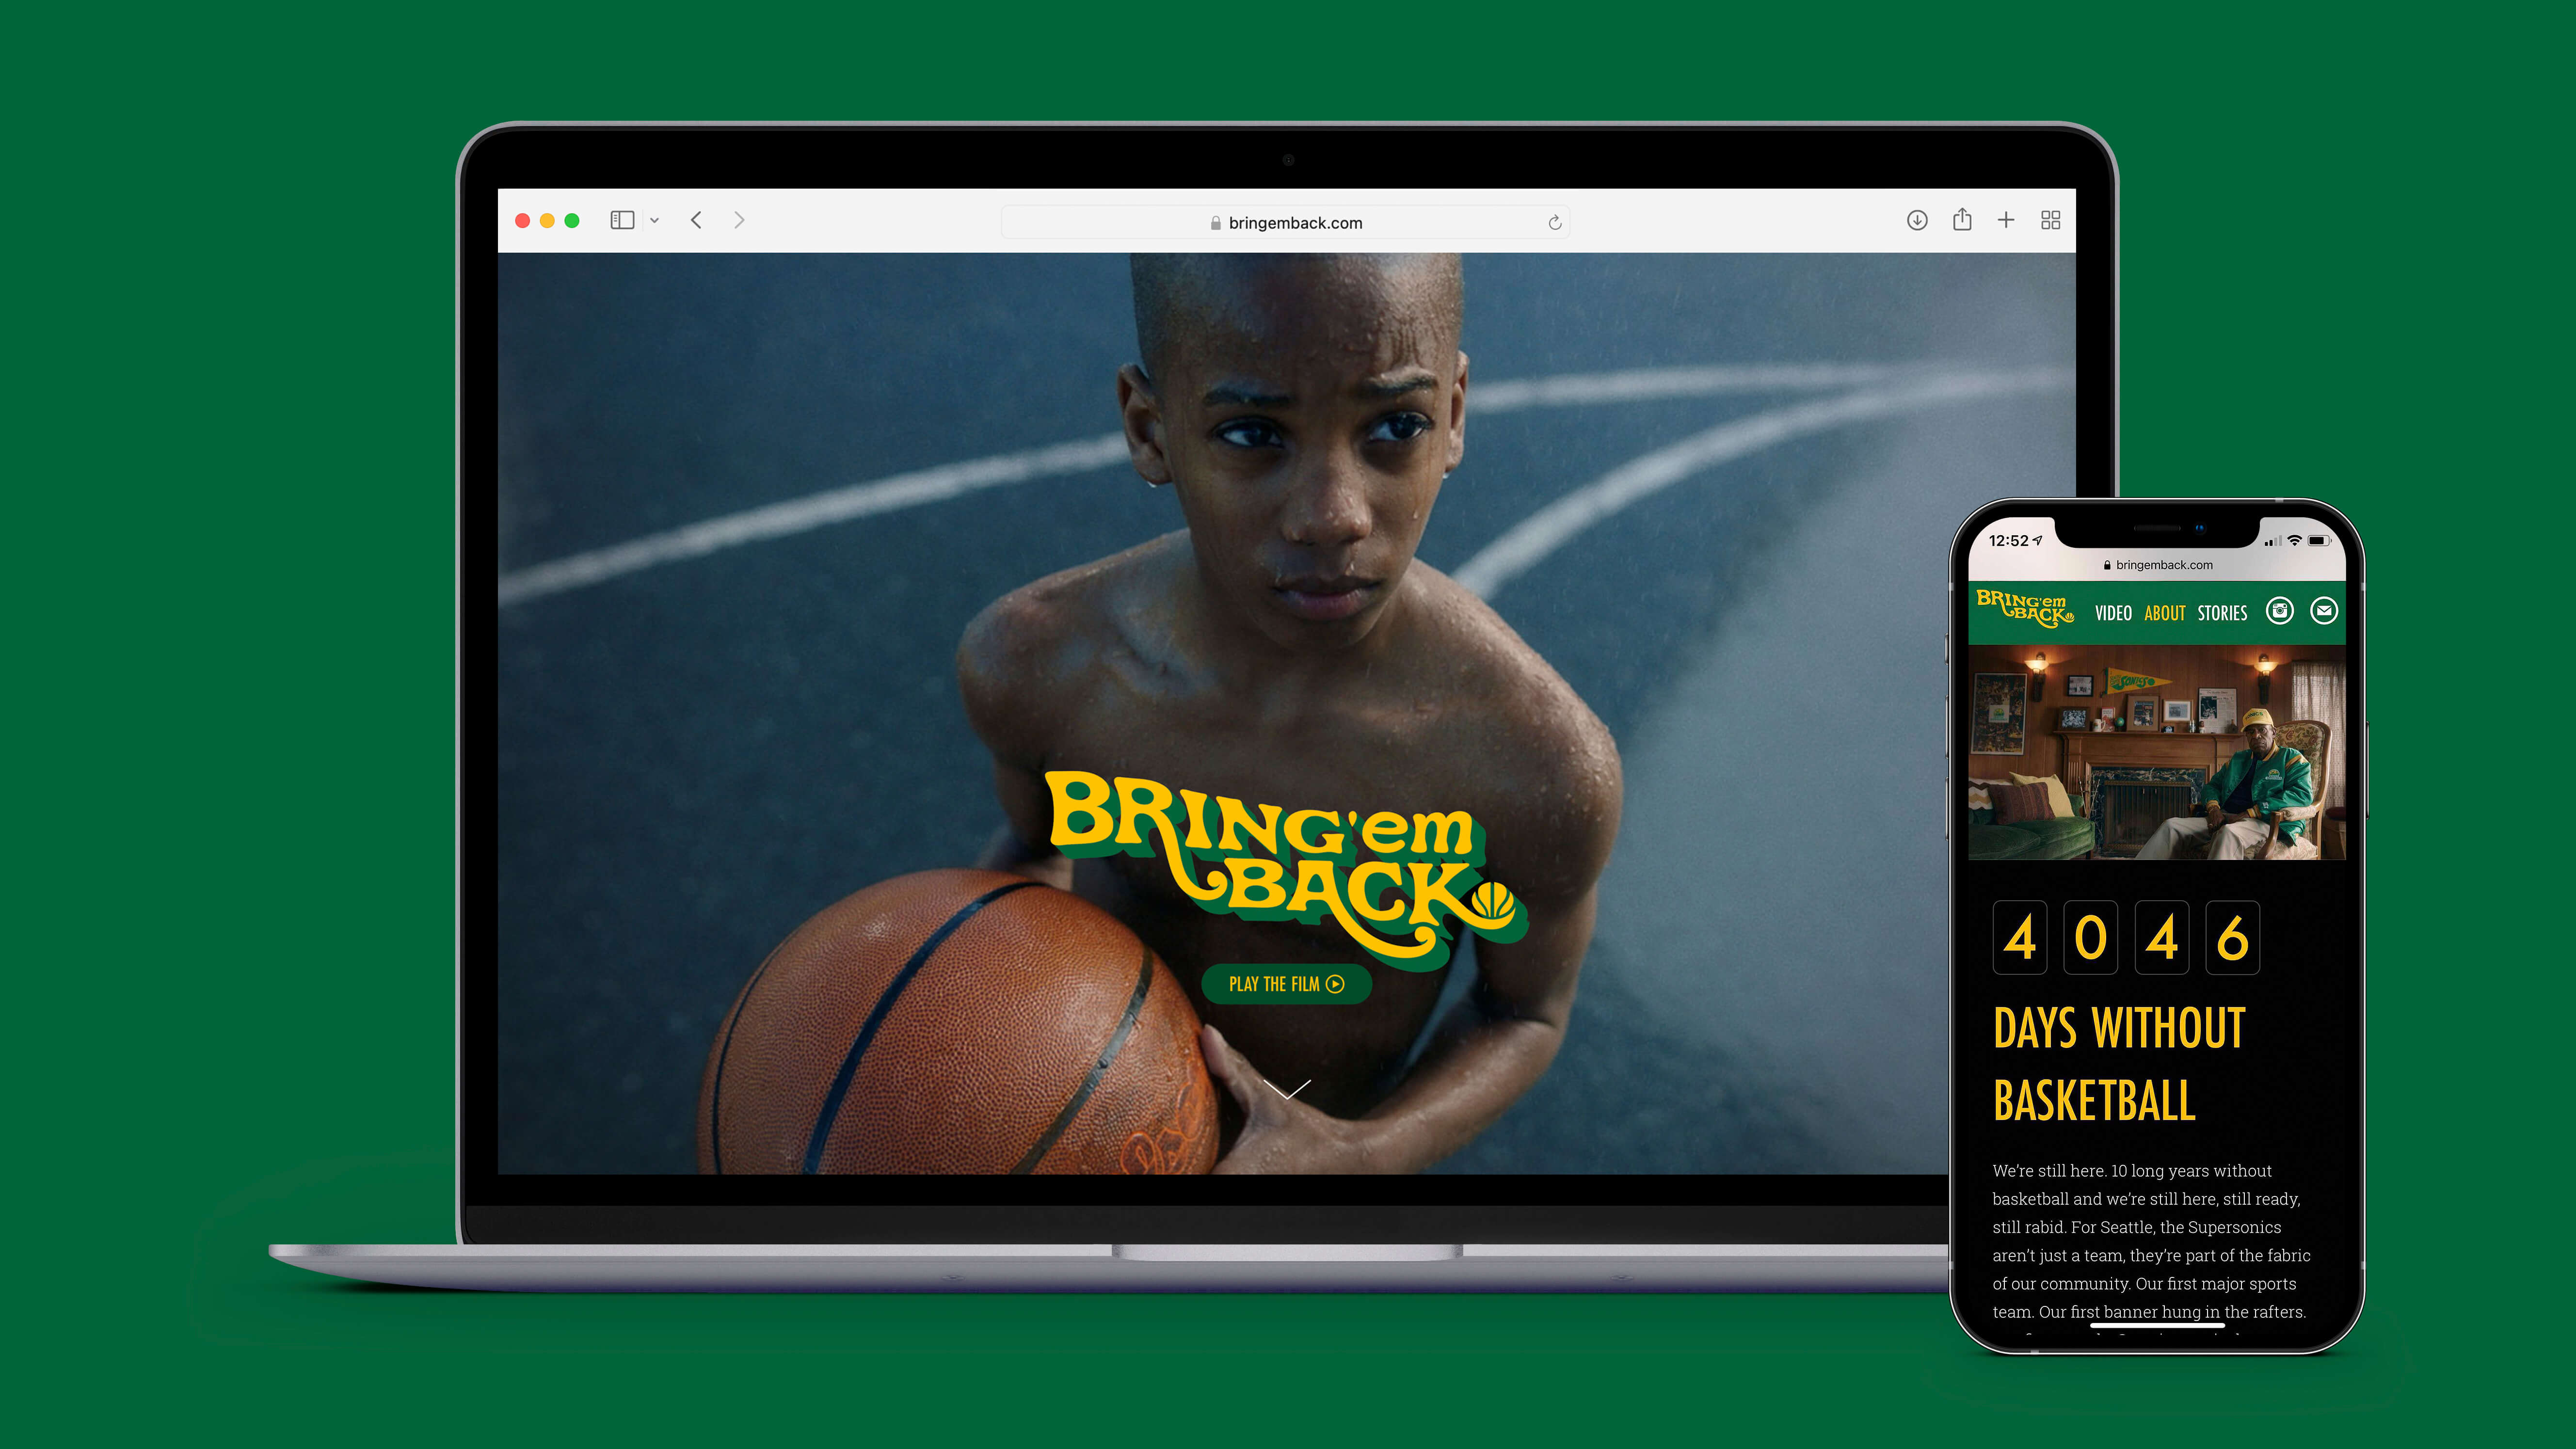 """A laptop screen and mobile phone feature a website designed to showcase a video for the """"Bring 'em Back"""" brand. A prominent headline reads """"4046 days without basketball"""""""